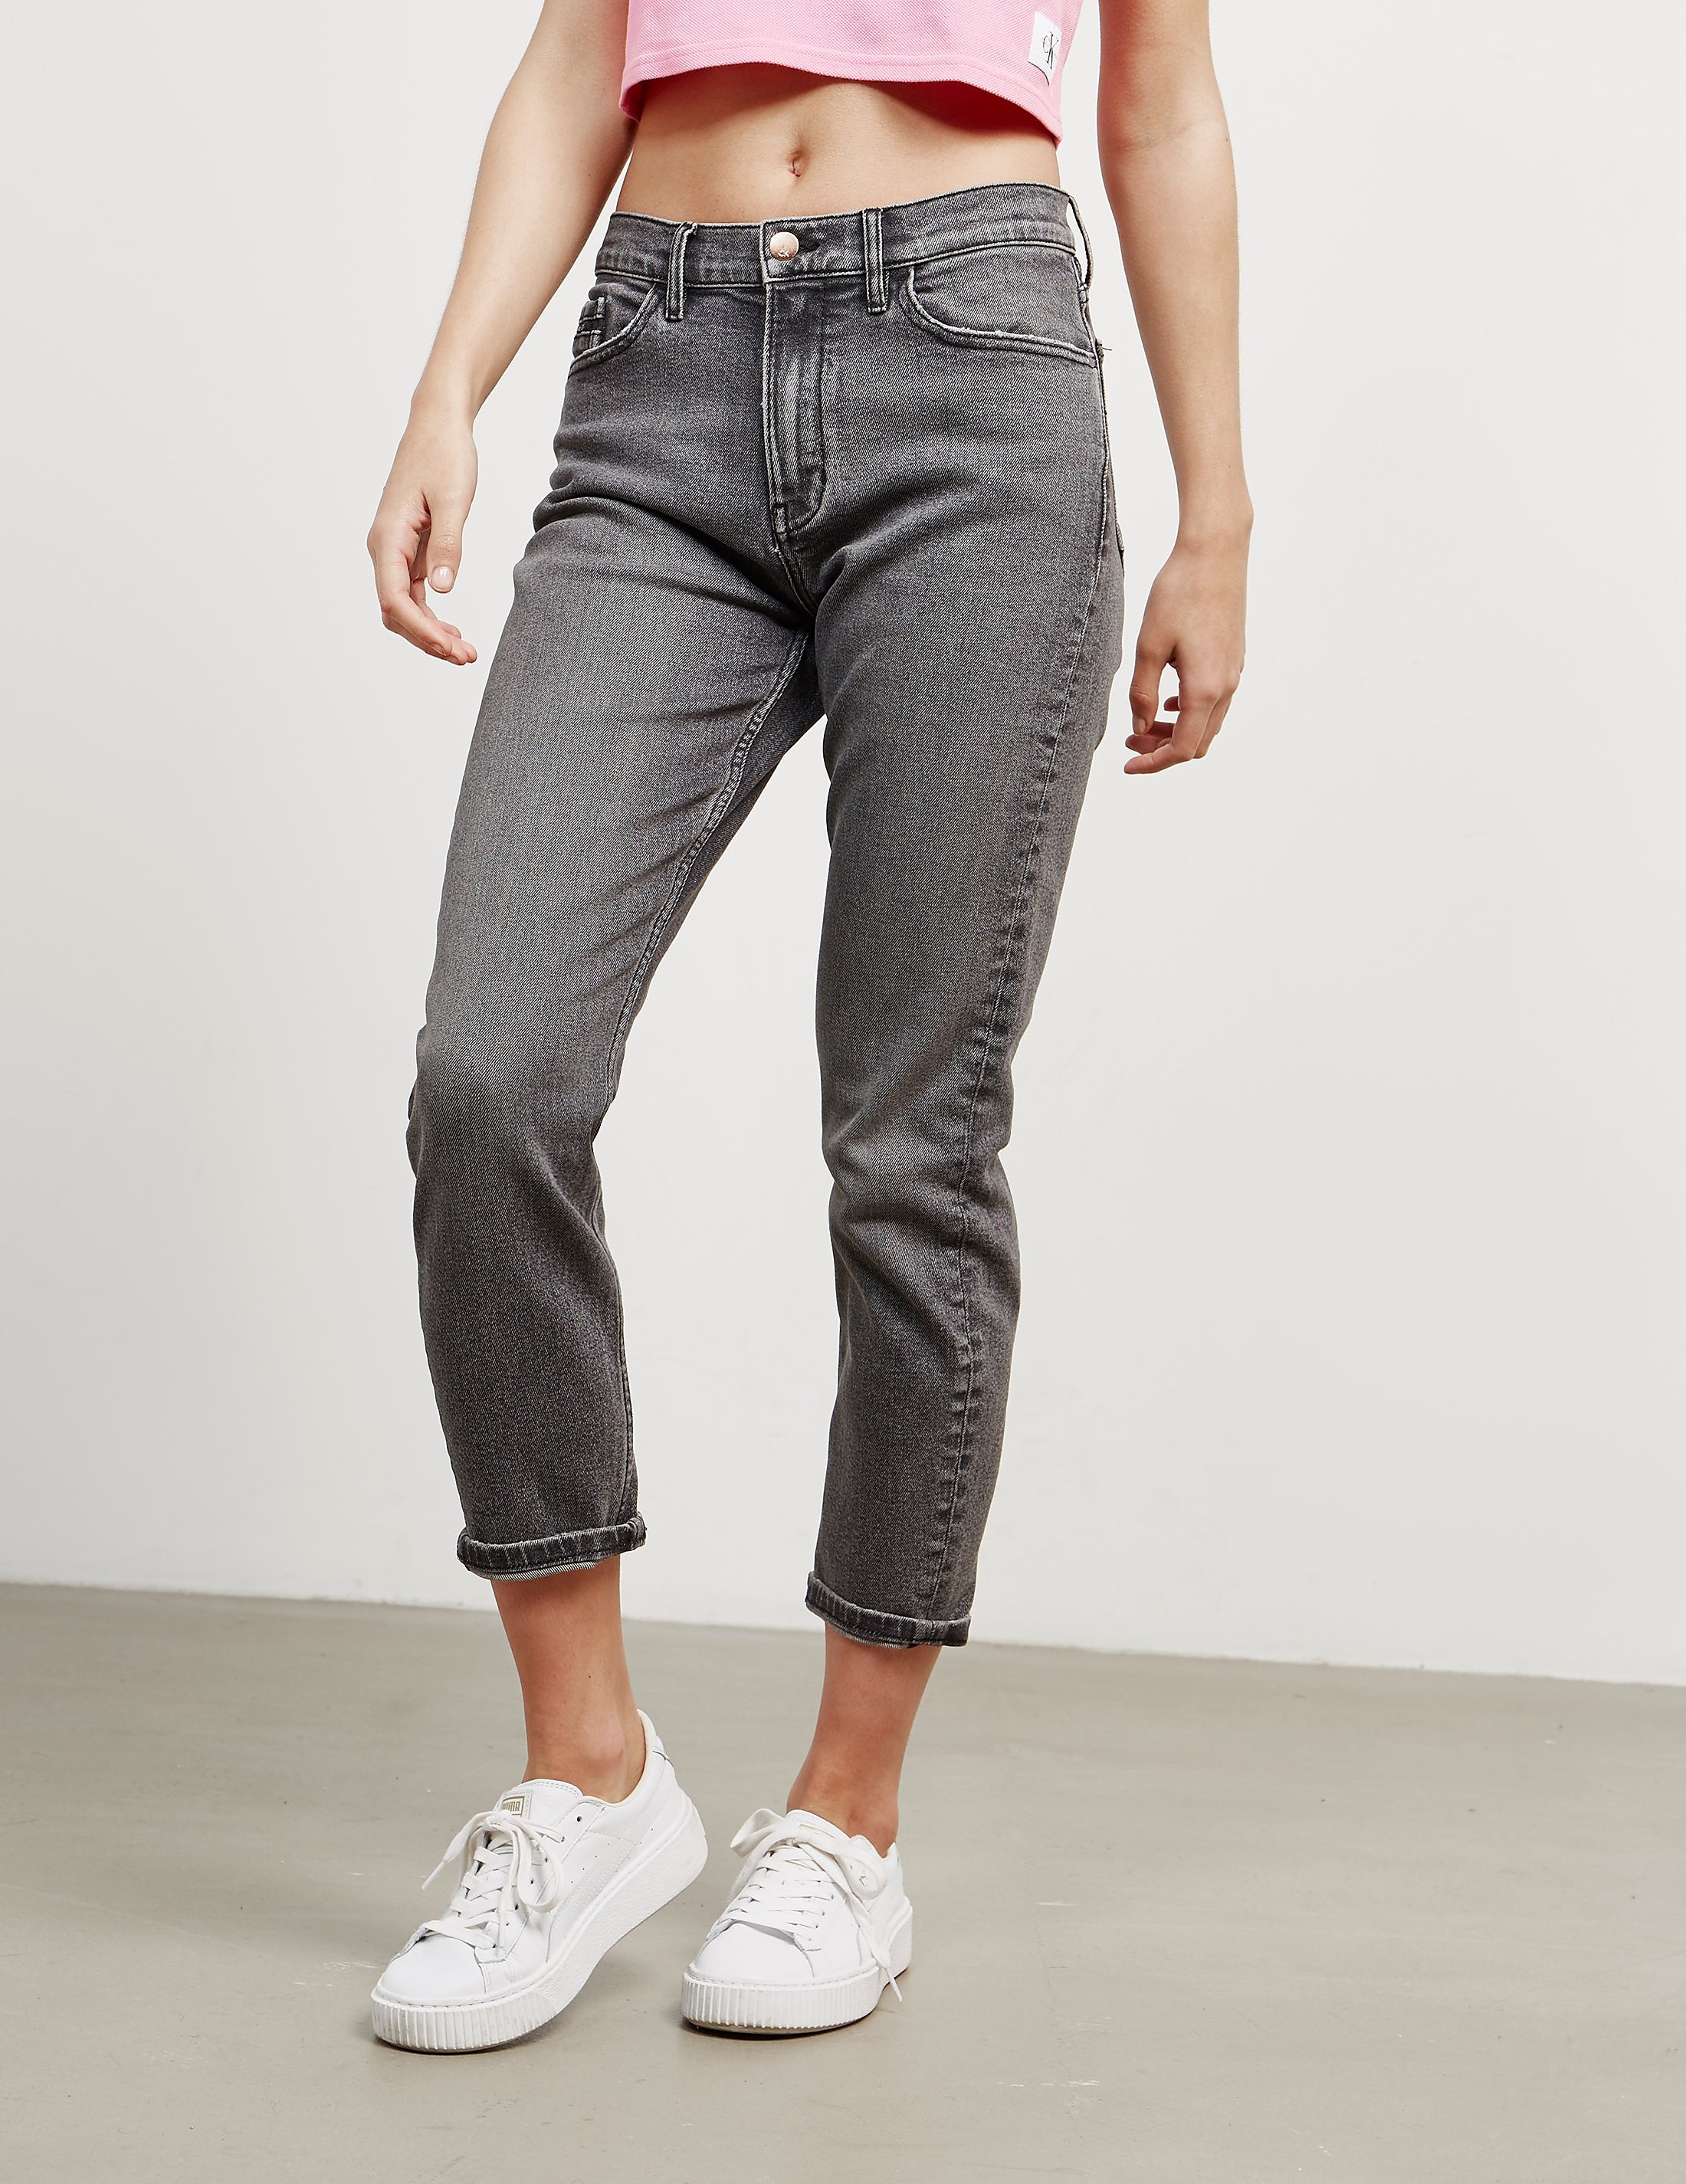 Calvin Klein High Rise Slim Fit Jeans